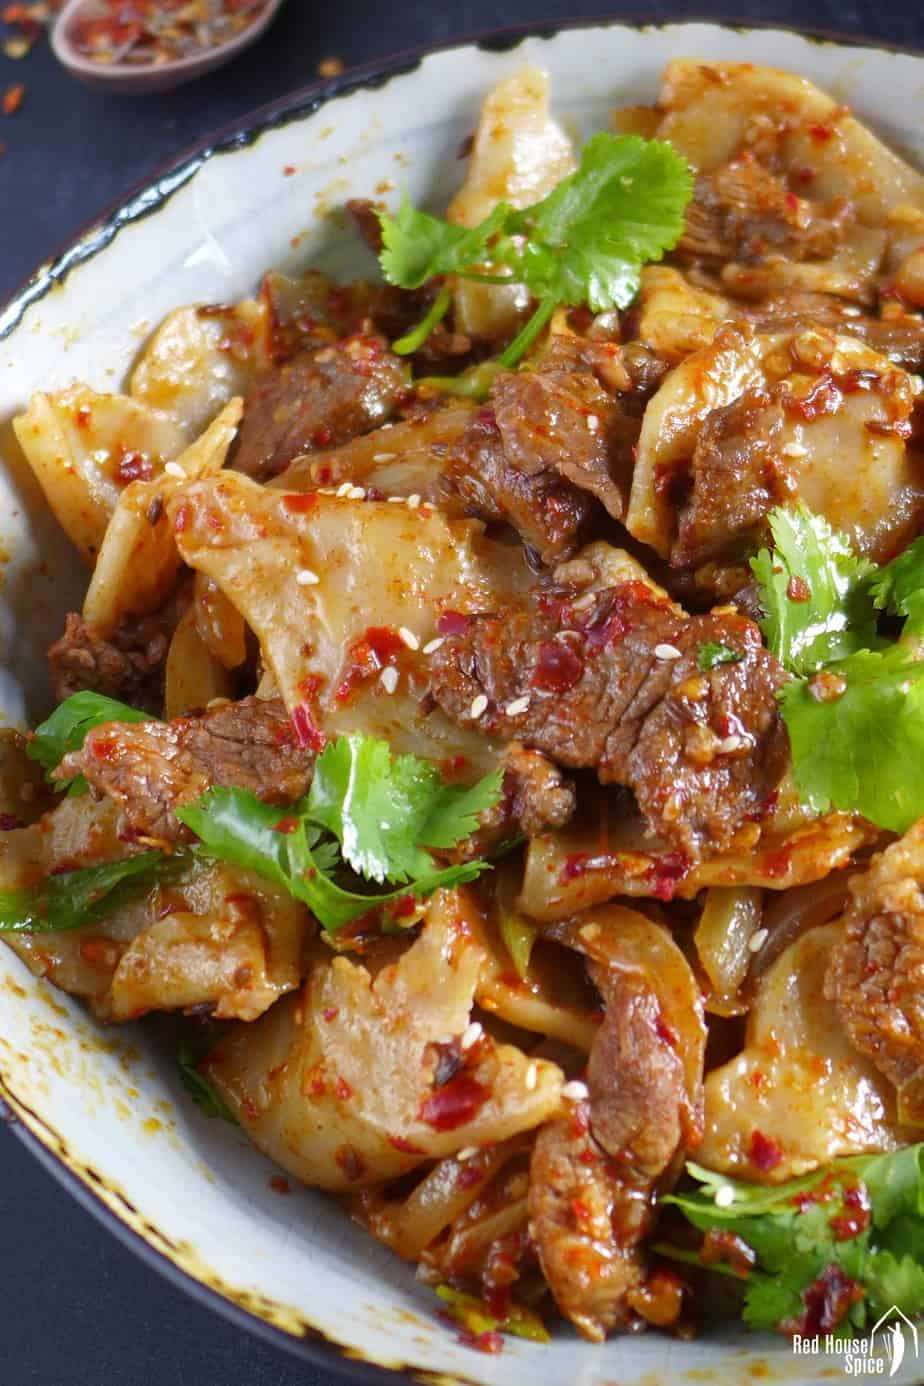 Hand-torn noodles mix with spicy lamb